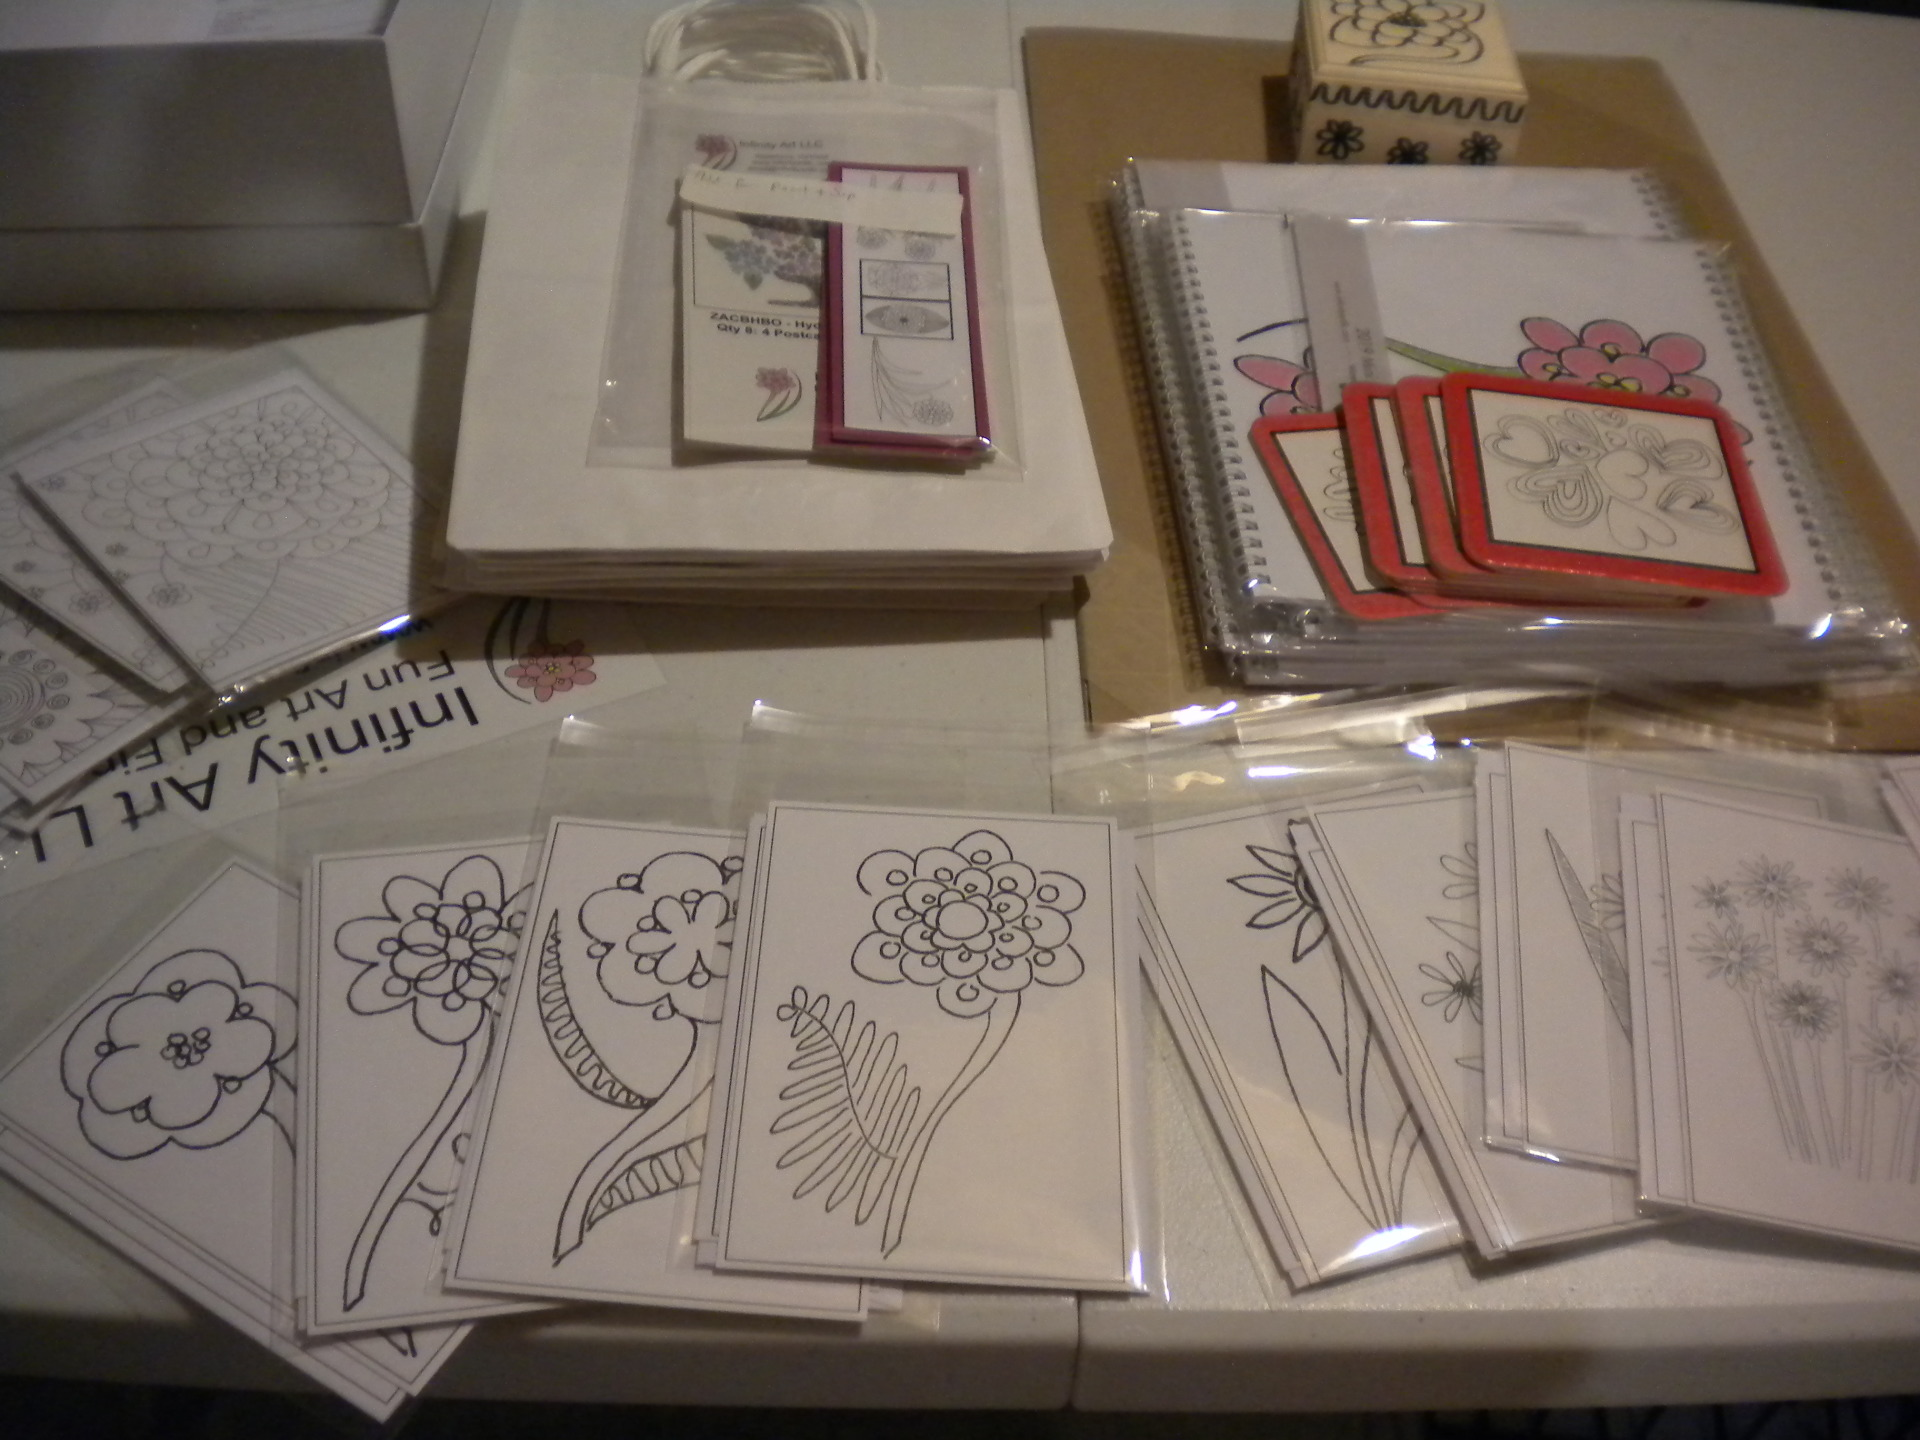 Photo of a whole smorgasbord of coloring goodies for a coloring party for a private event.